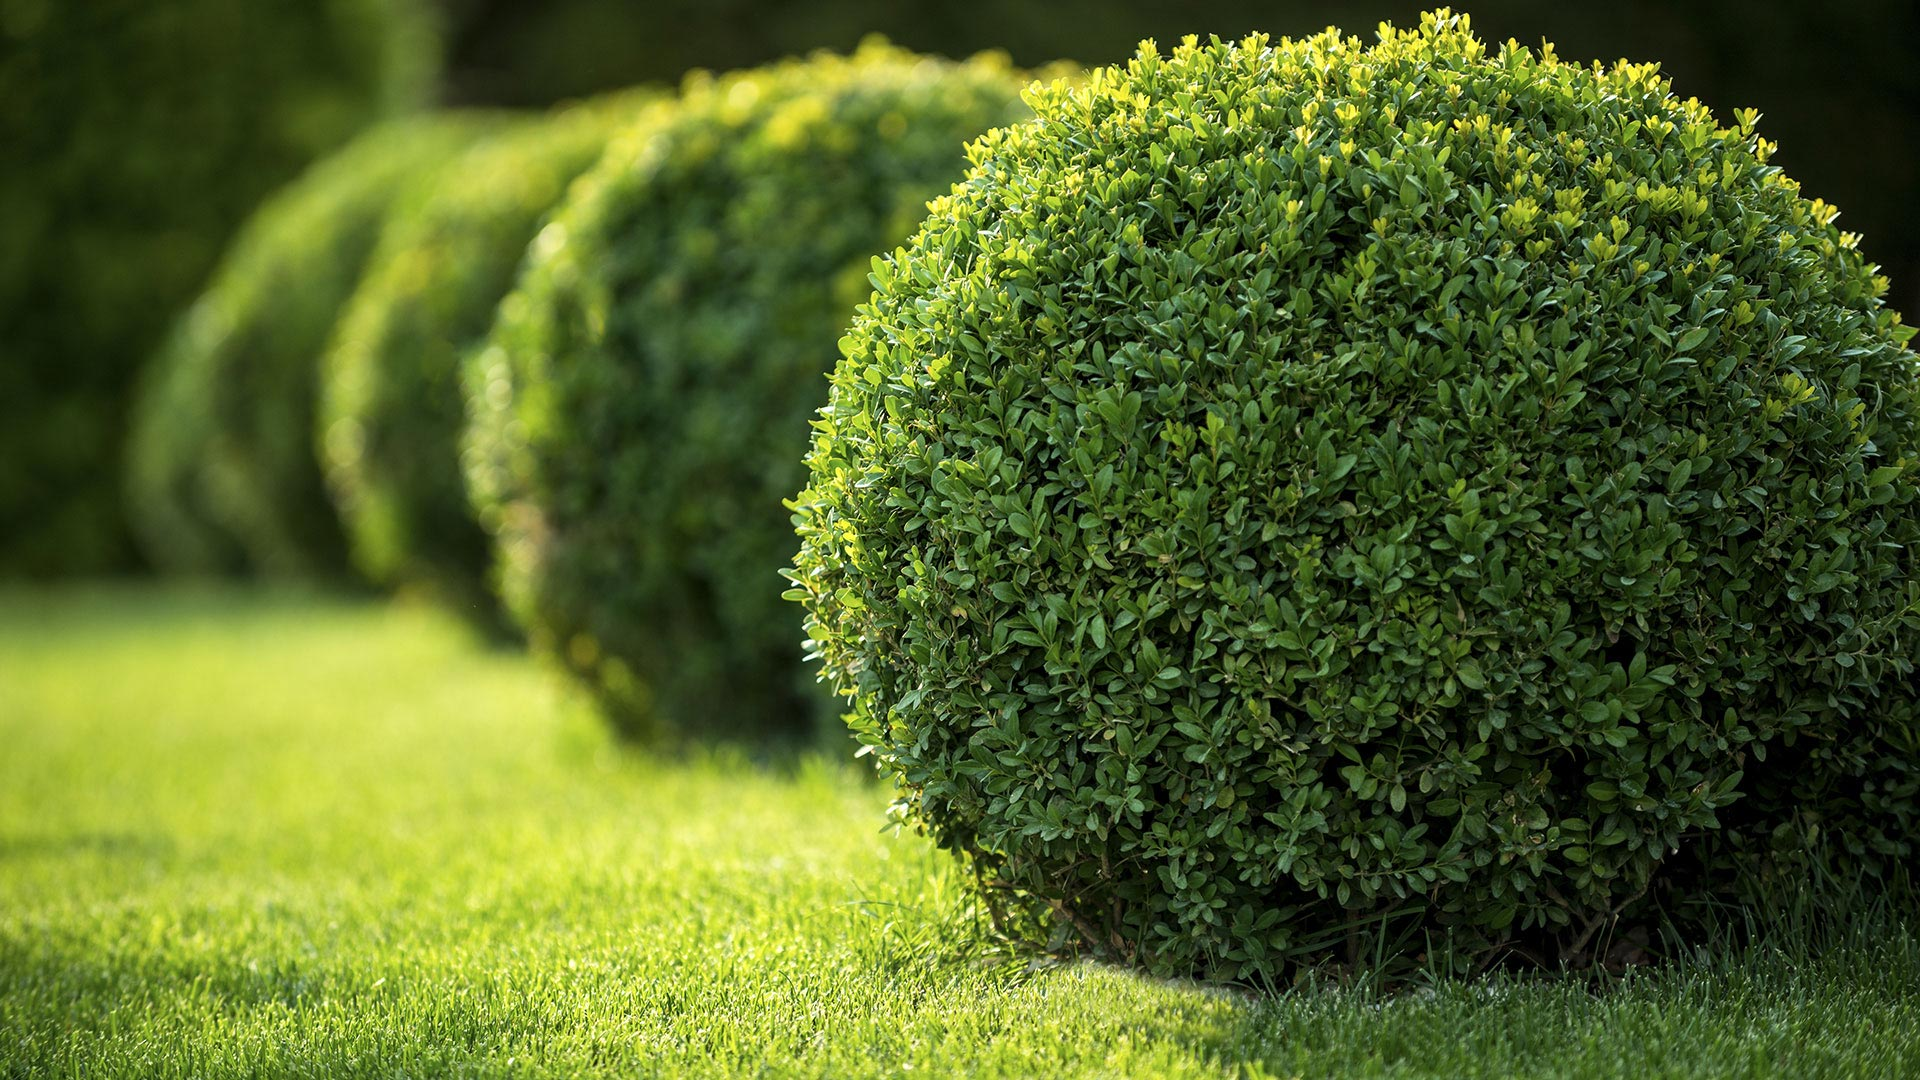 Green Carpet Lawns Lawn Care, Landscaping and Tree Removal slide 1